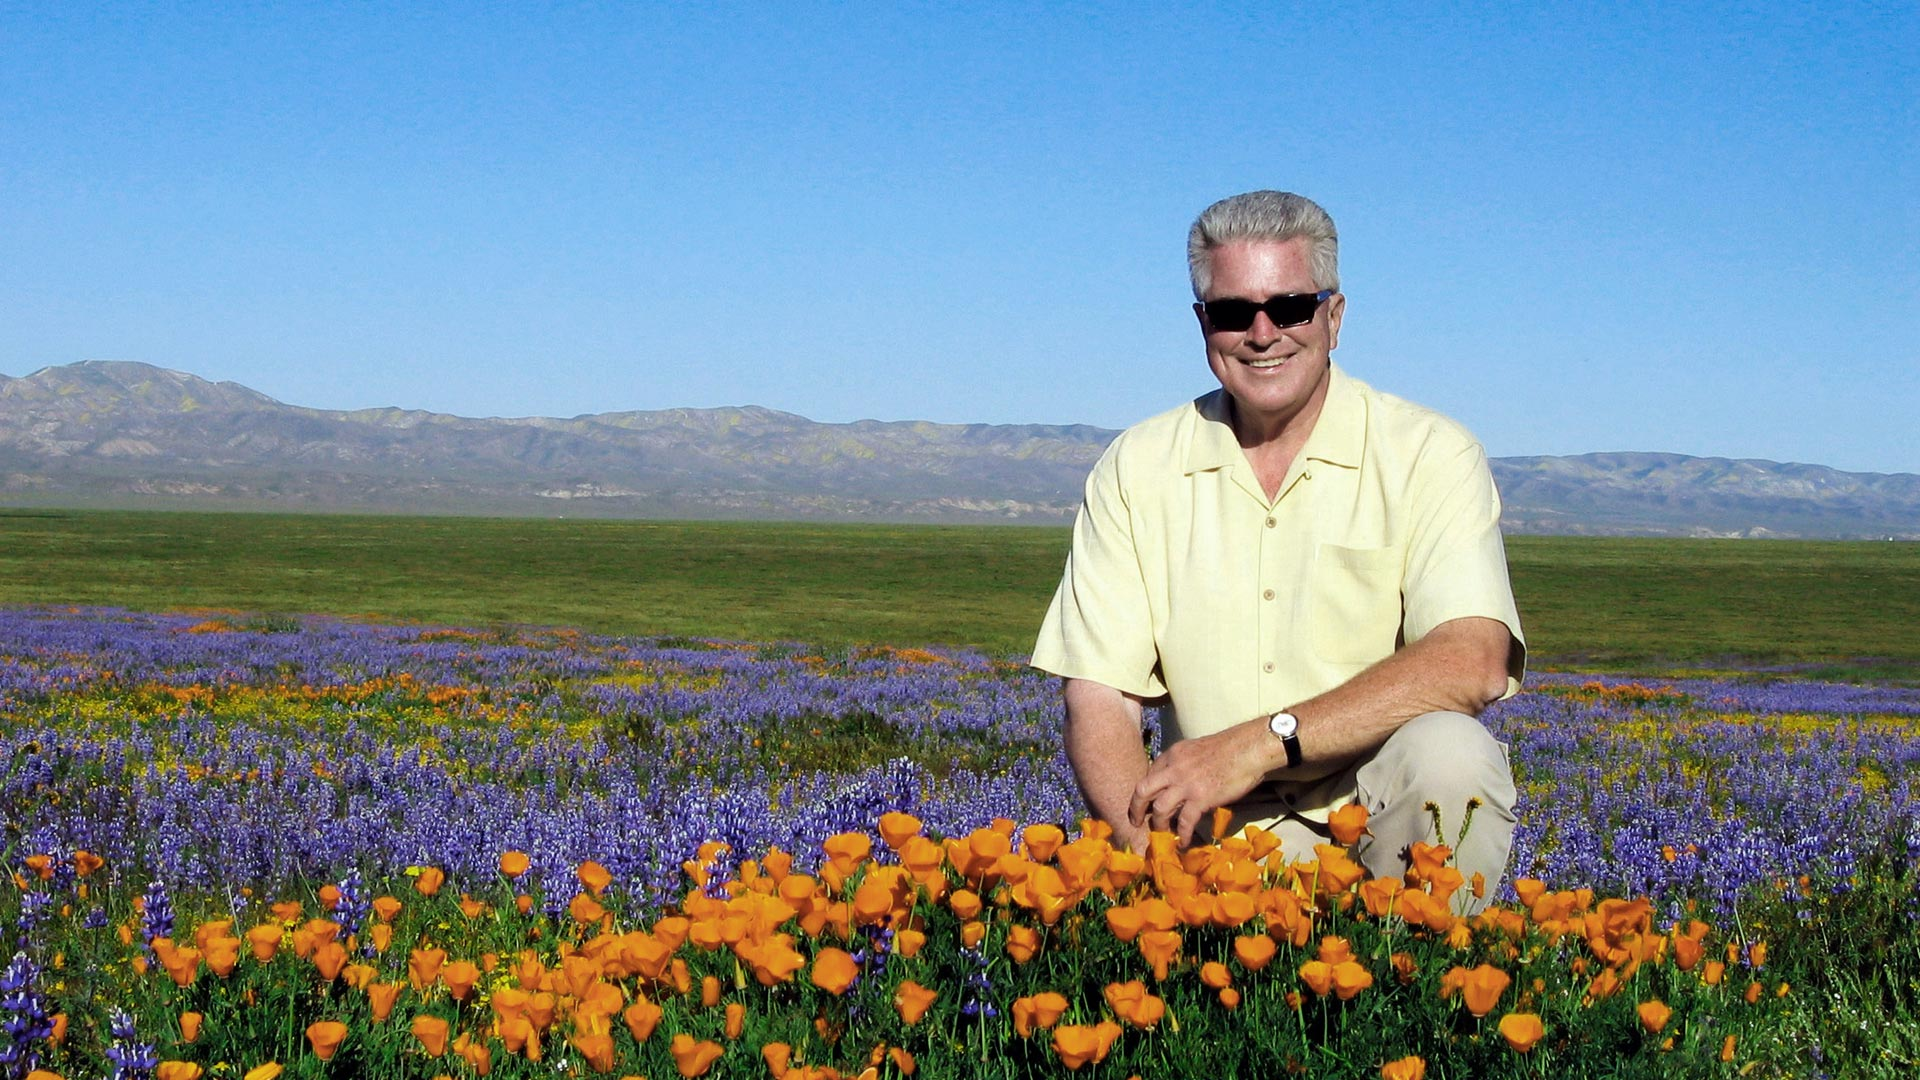 Huell Howser with Poppies